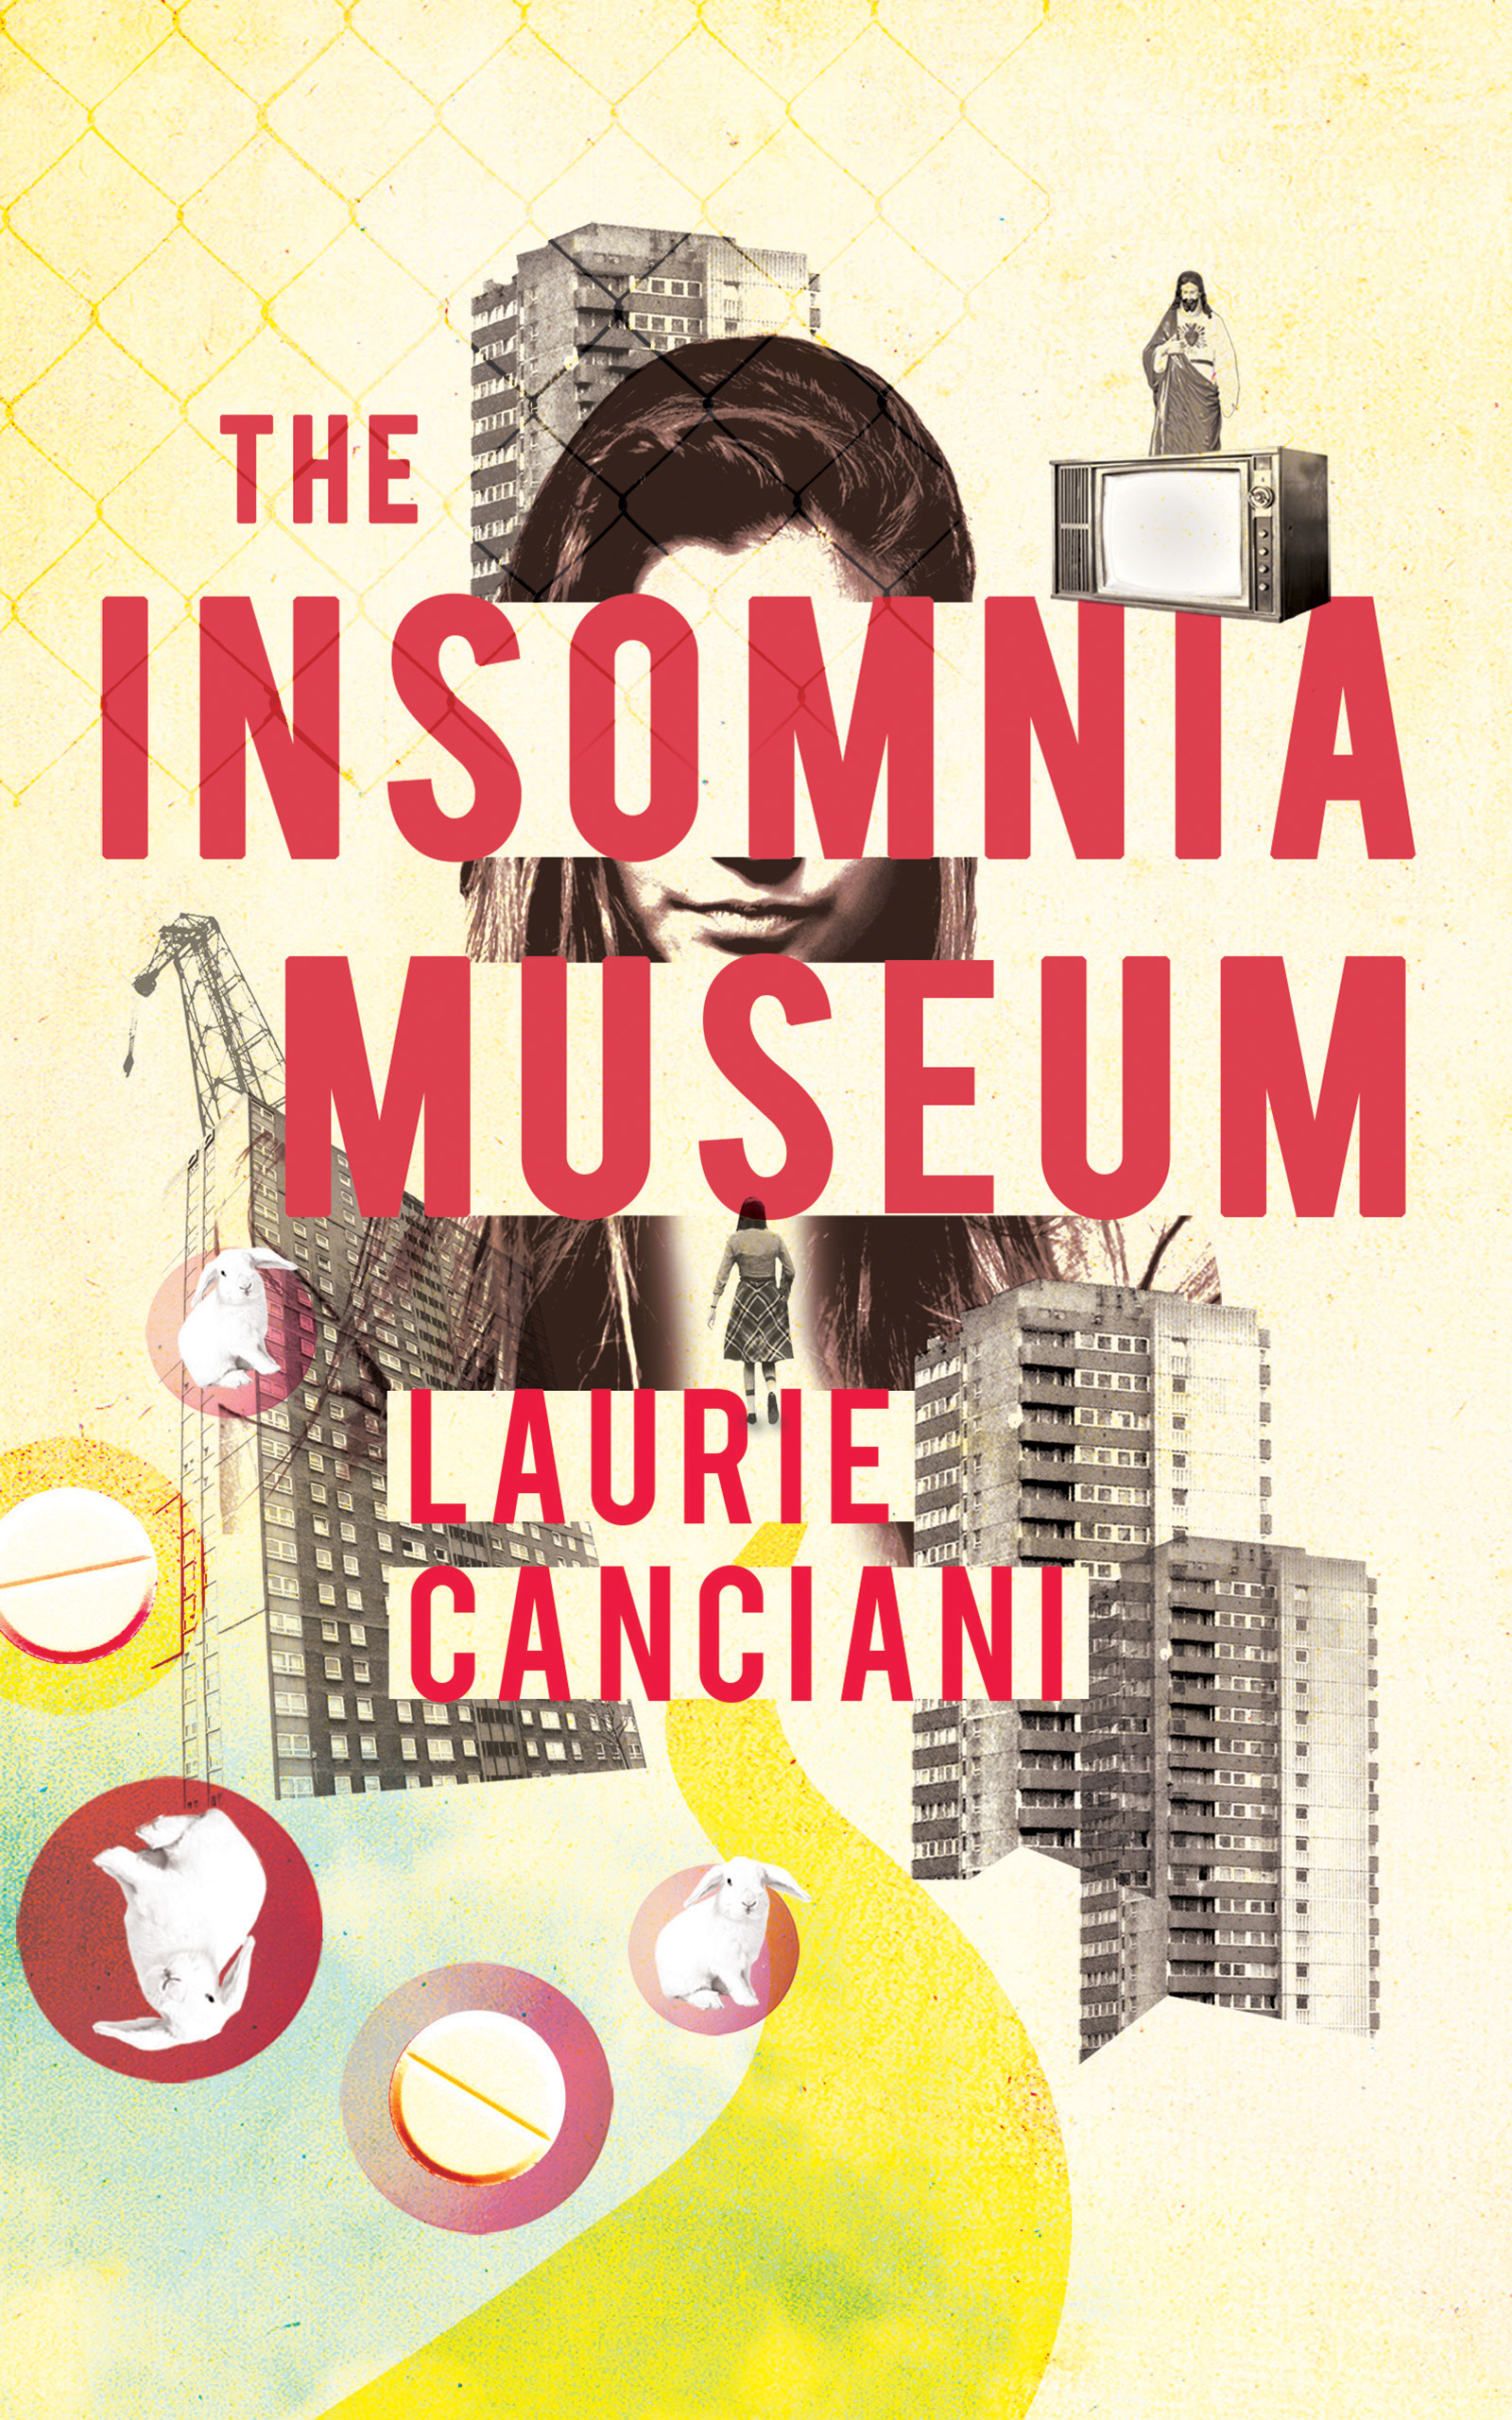 Canciani_THE INSOMNIA MUSEUM.jpg